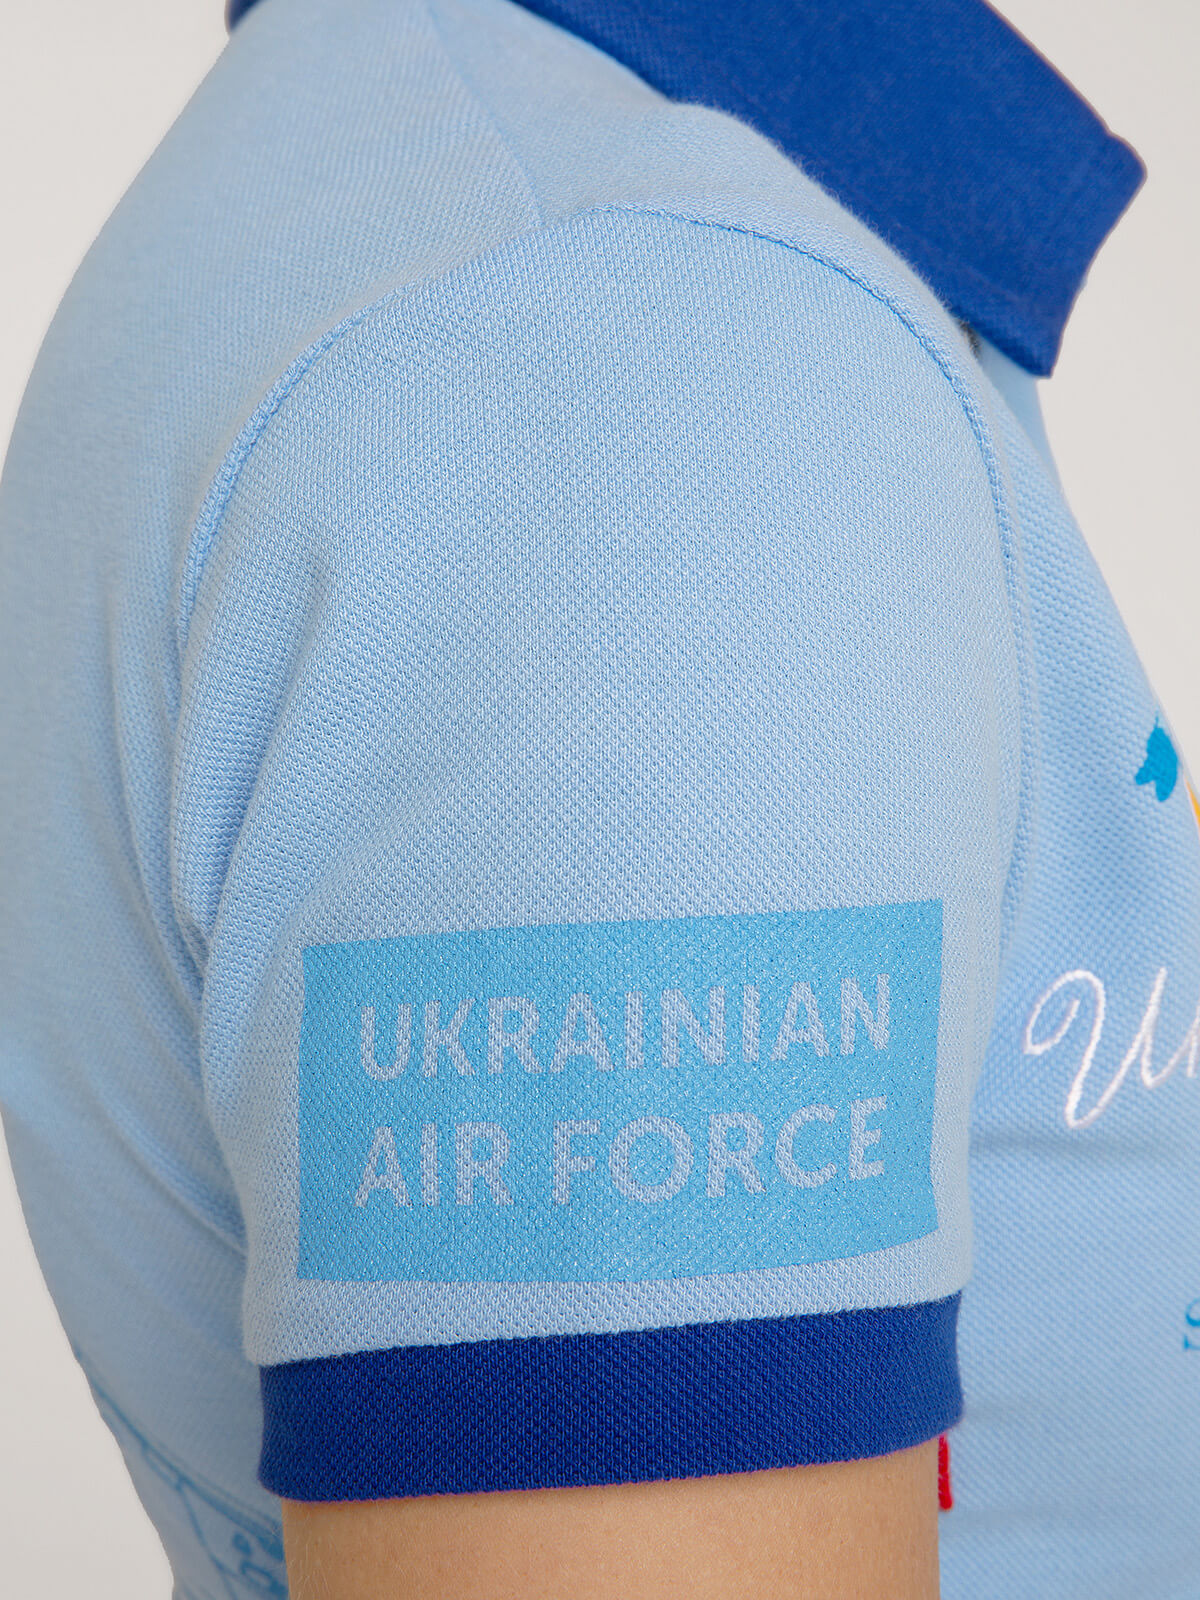 Kids Polo Shirt Ukrainian Falcons. Color sky blue.   .